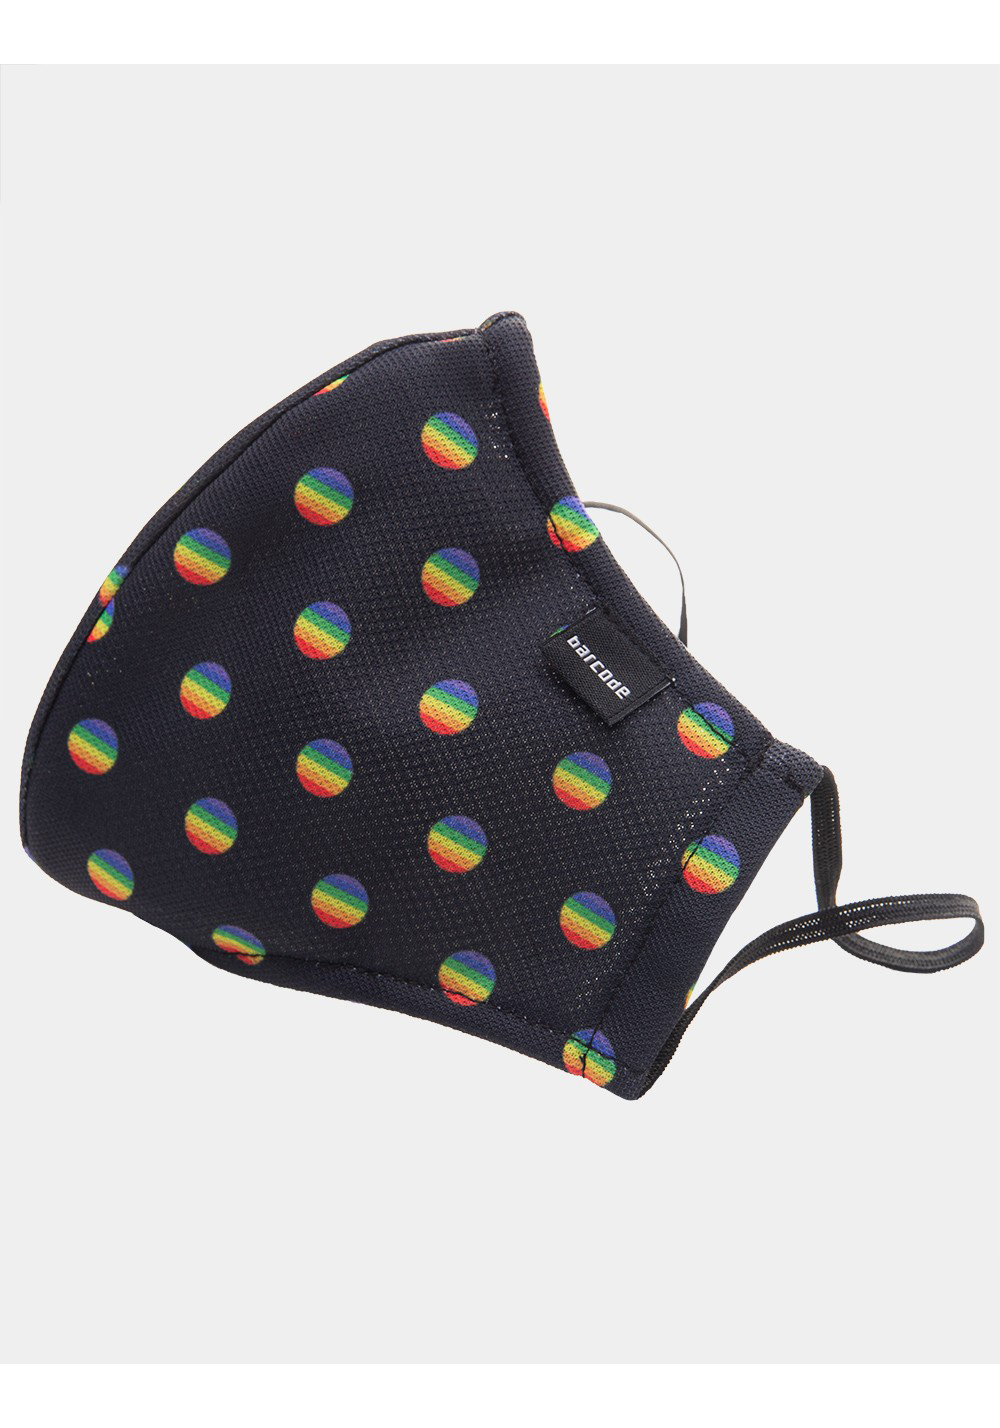 Barcode Berlin Mask Major General Michelinho | Black/Rainbow